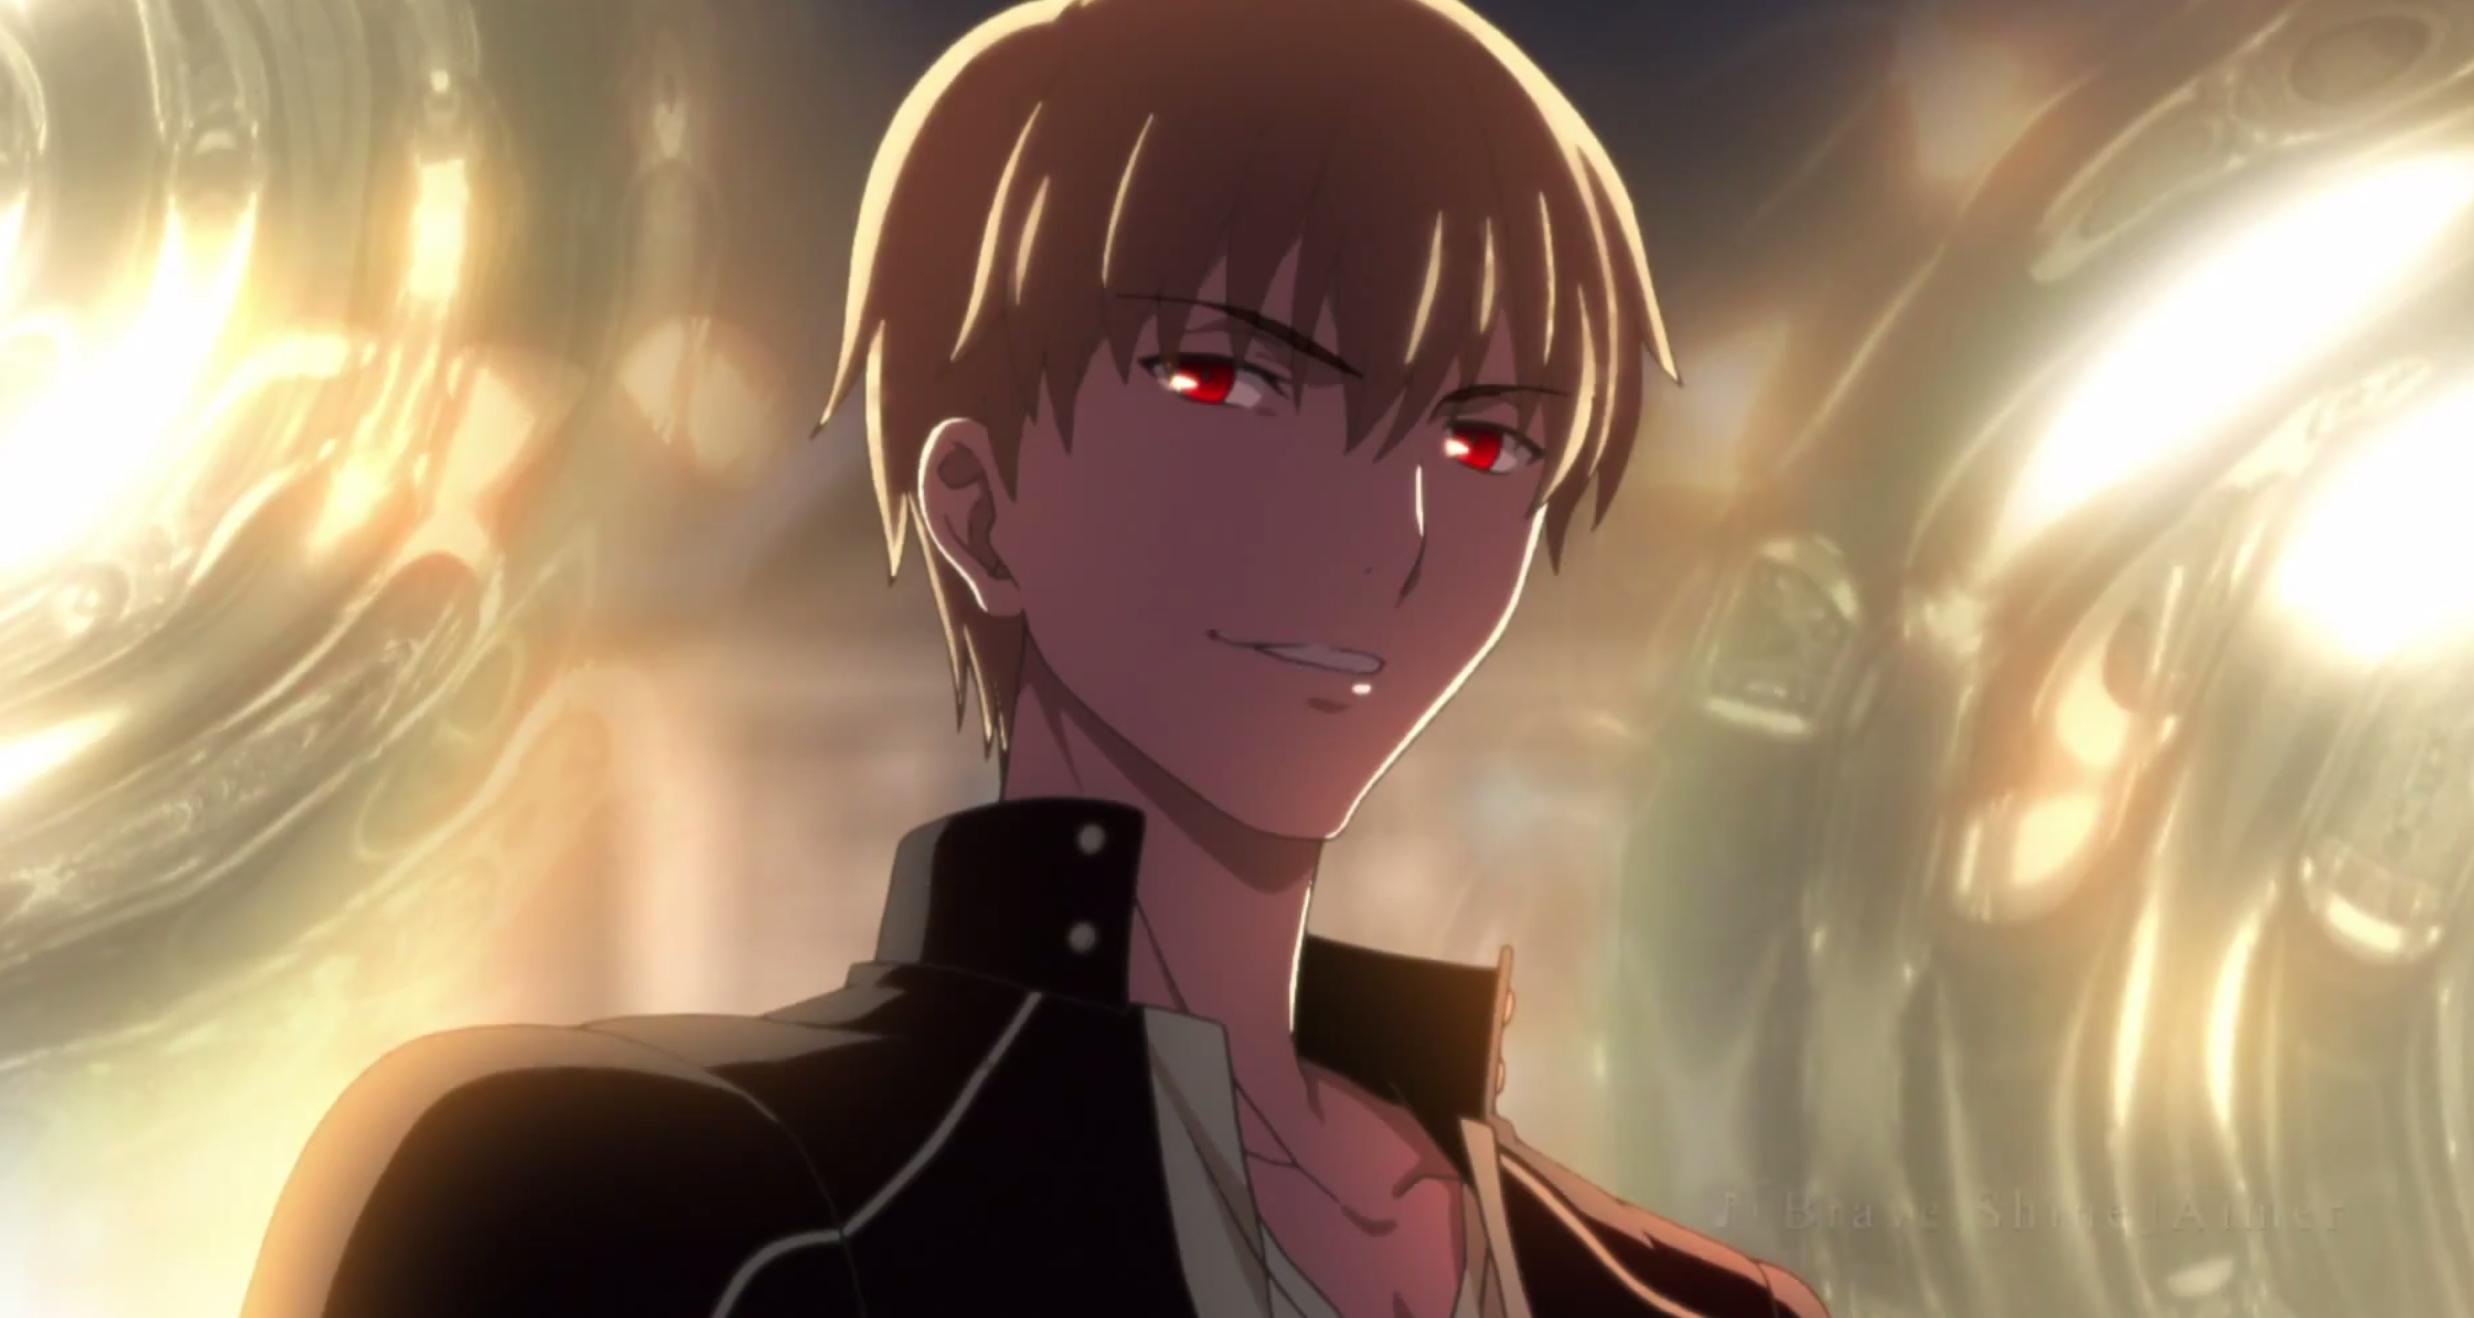 New Footage Revealed of Fate:Stay Night- Unlimited Blade Works Season 2 for Premiere on Wednesday